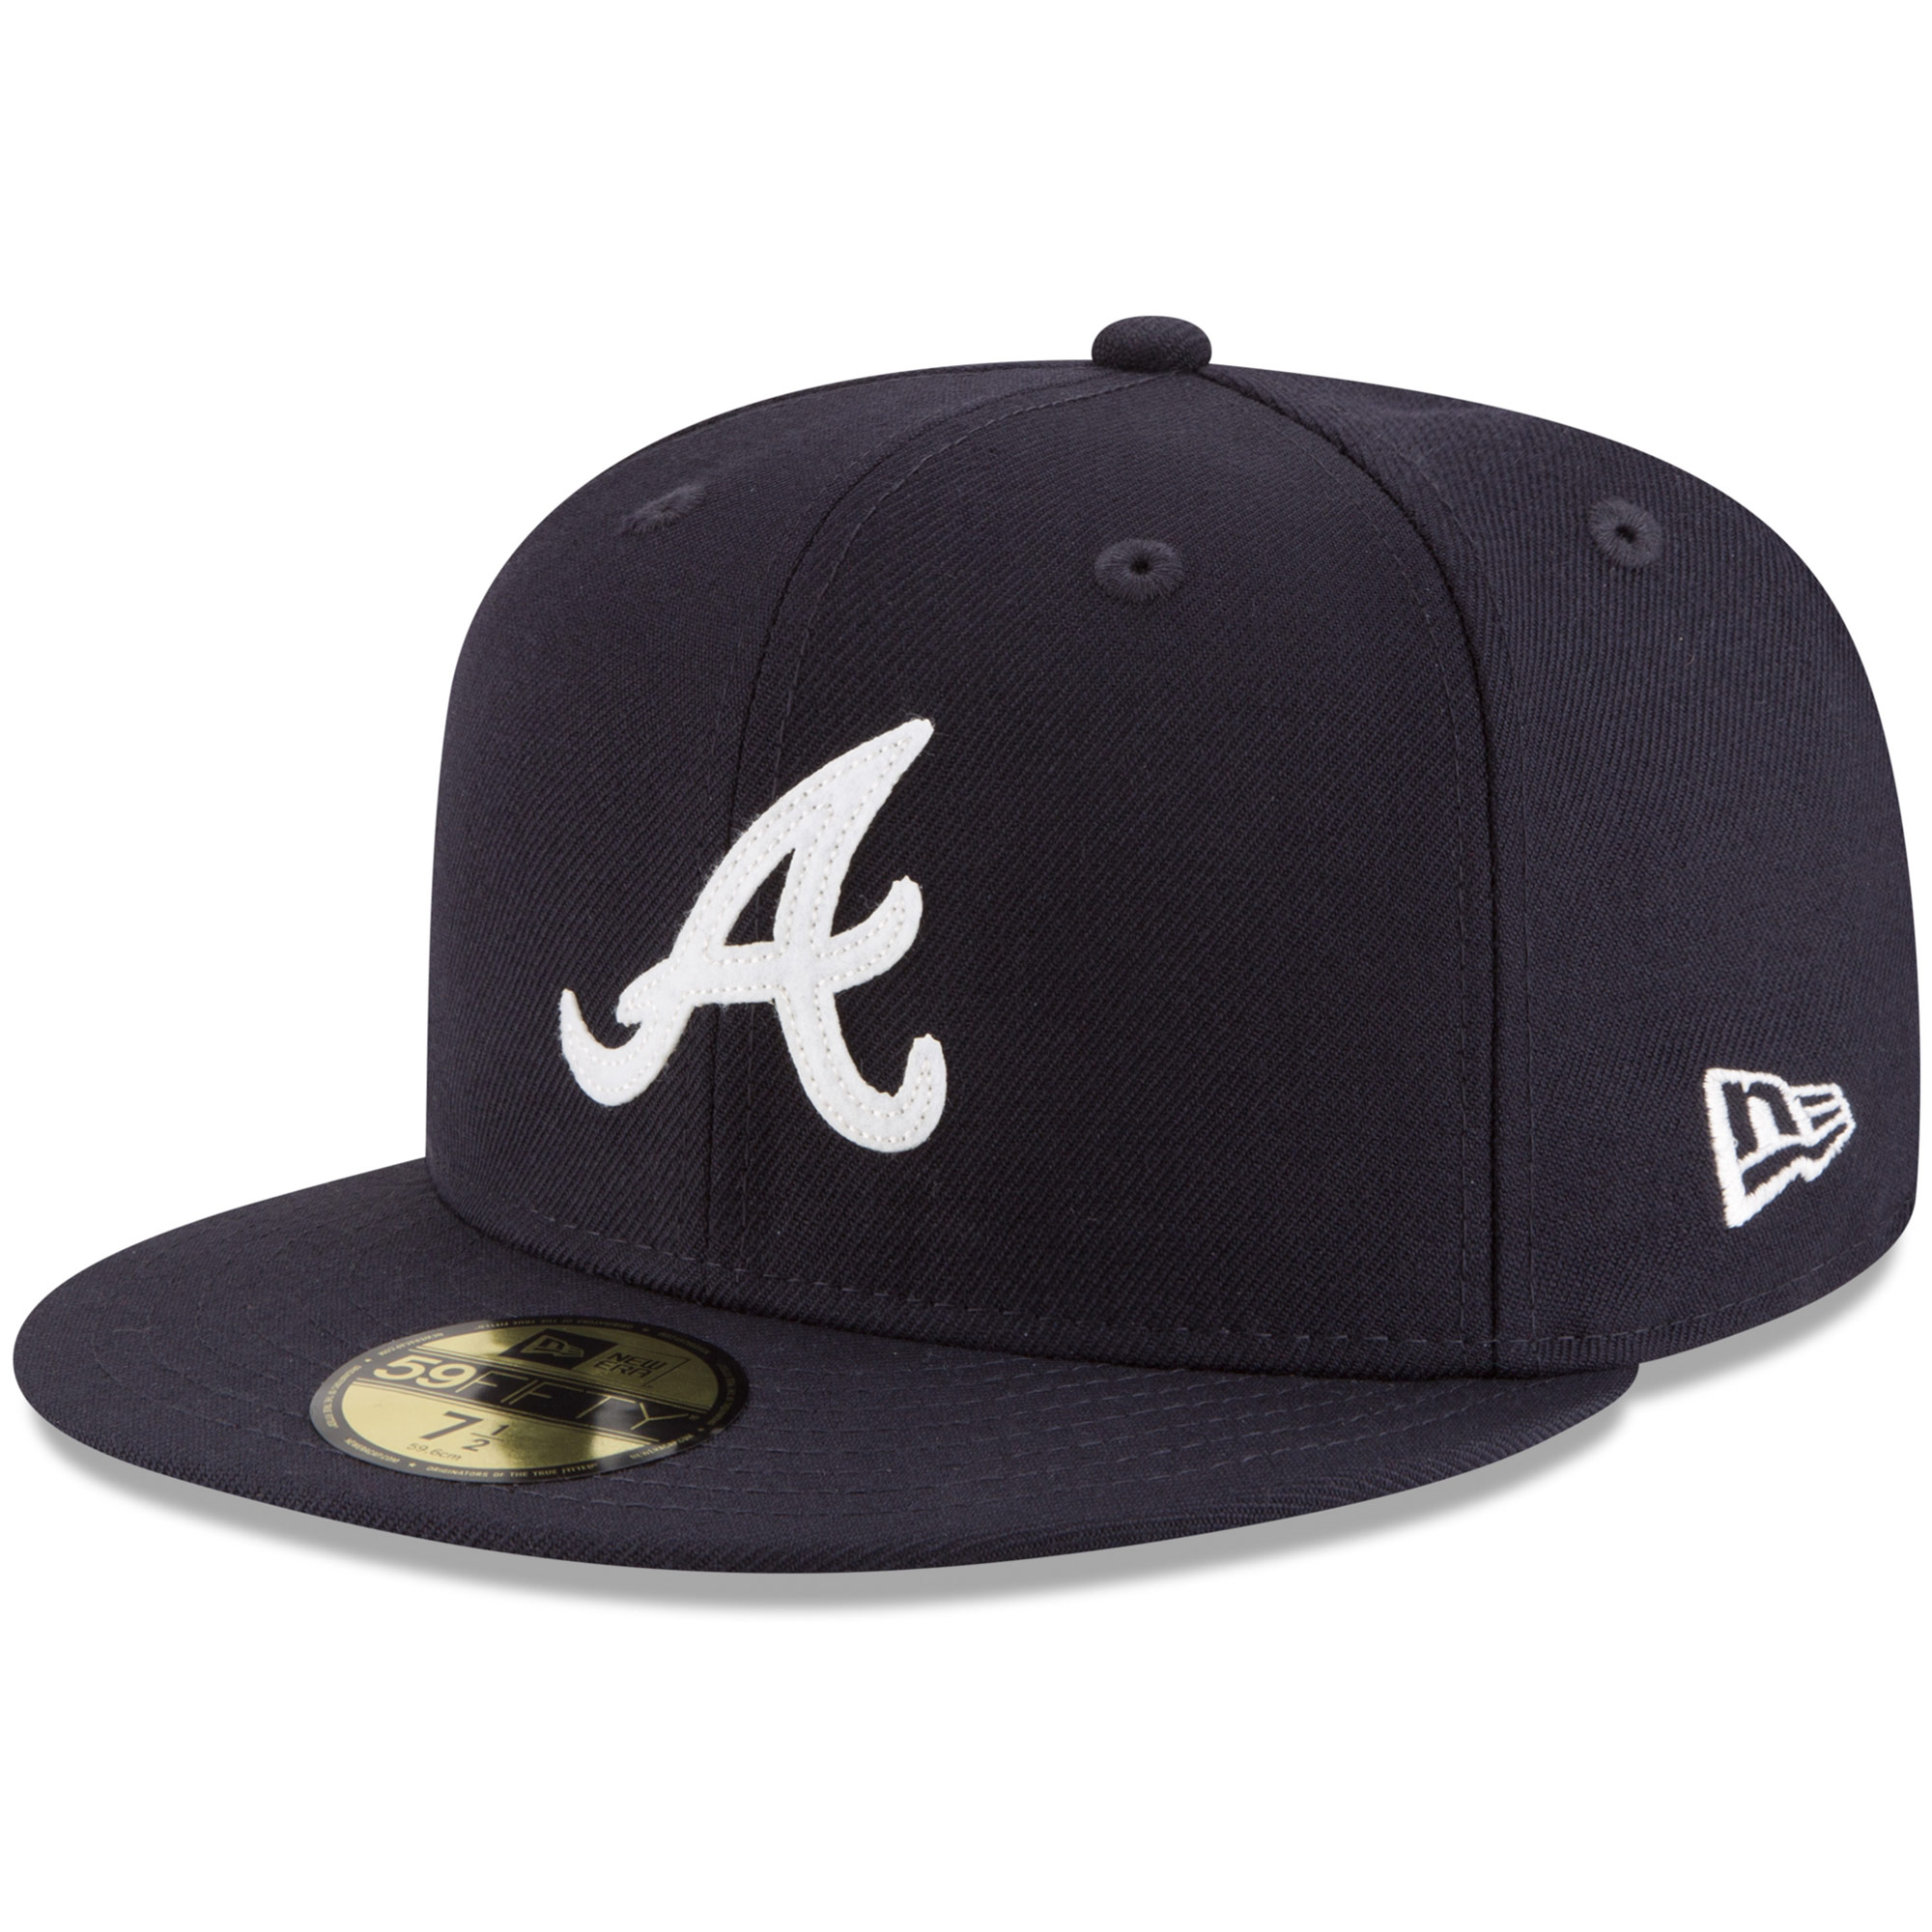 Atlanta Braves New Era Cooperstown Inaugural Season 59FIFTY Fitted Hat - Navy